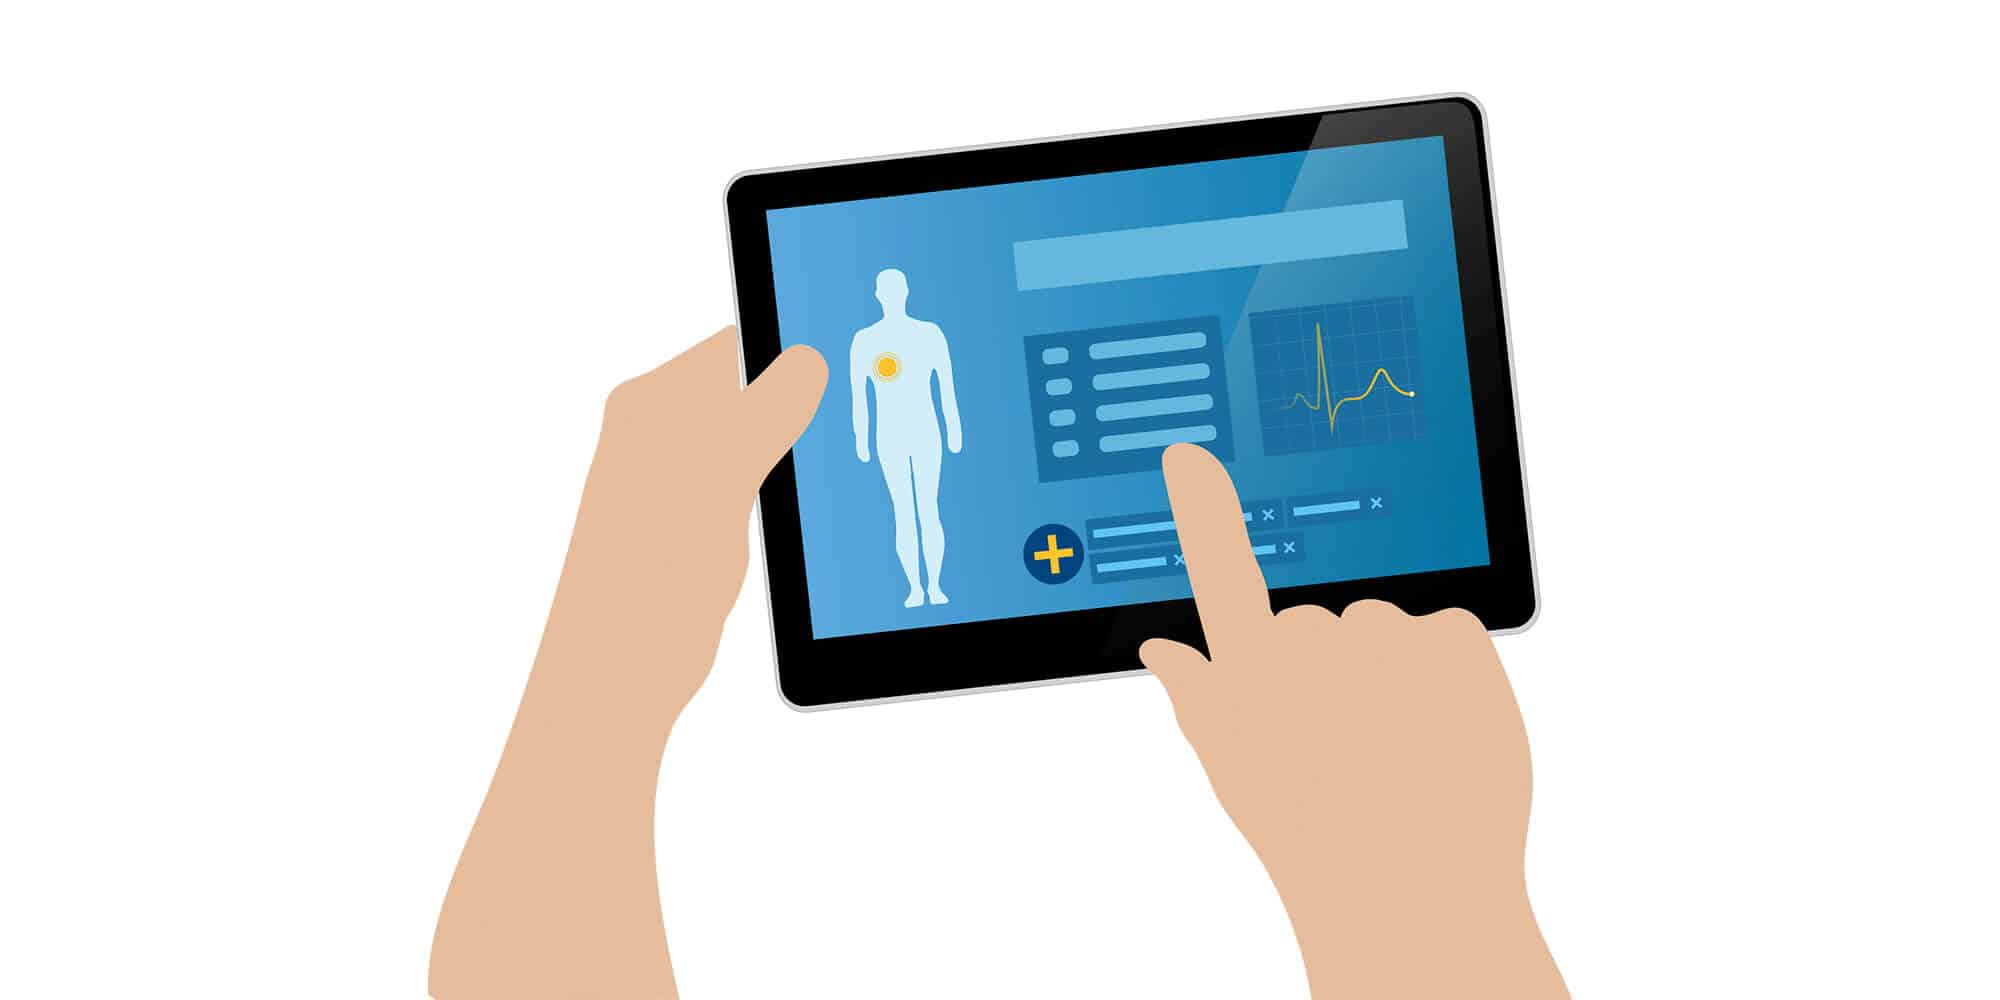 How to Develop a Remote Patient Monitoring App